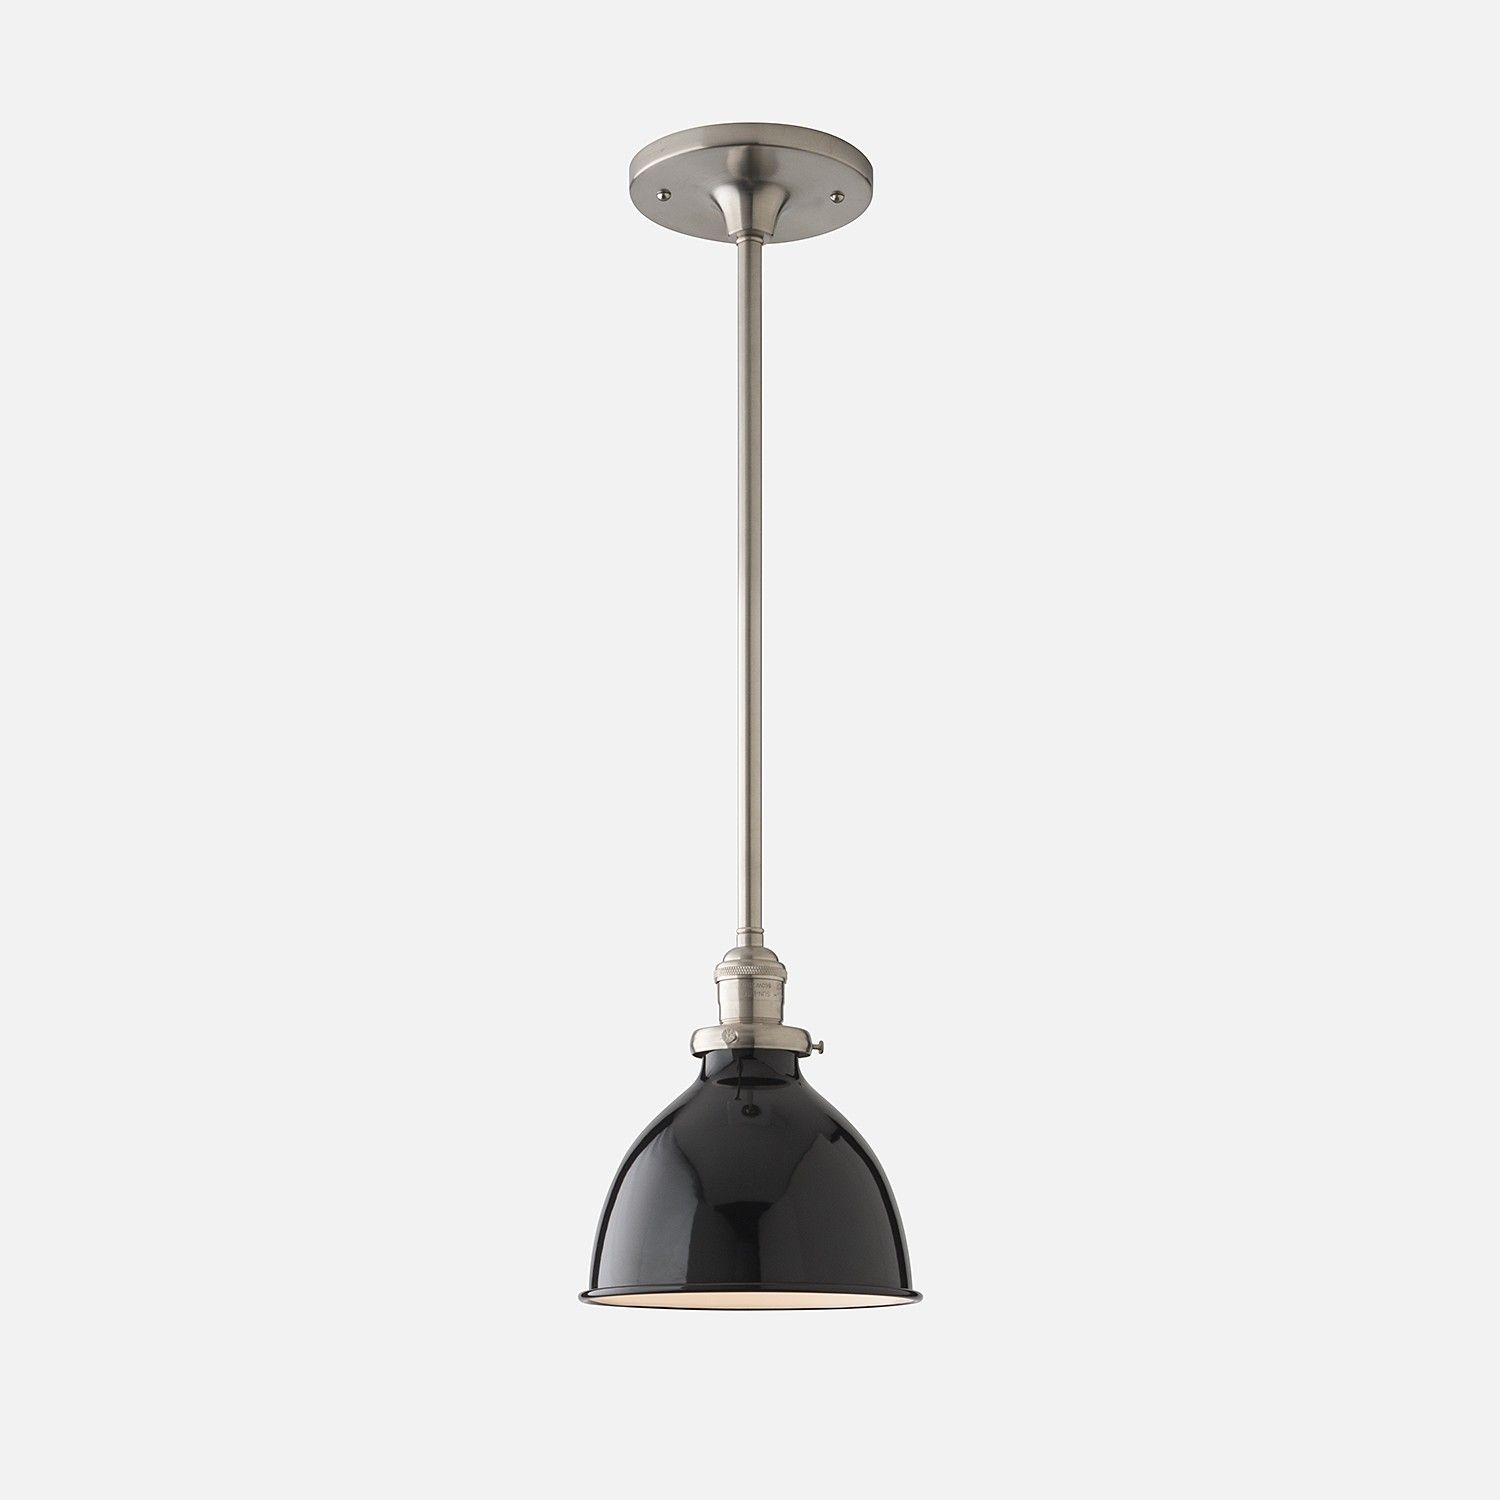 American Electric Lighting Products: Satellite Pendant 2.25""